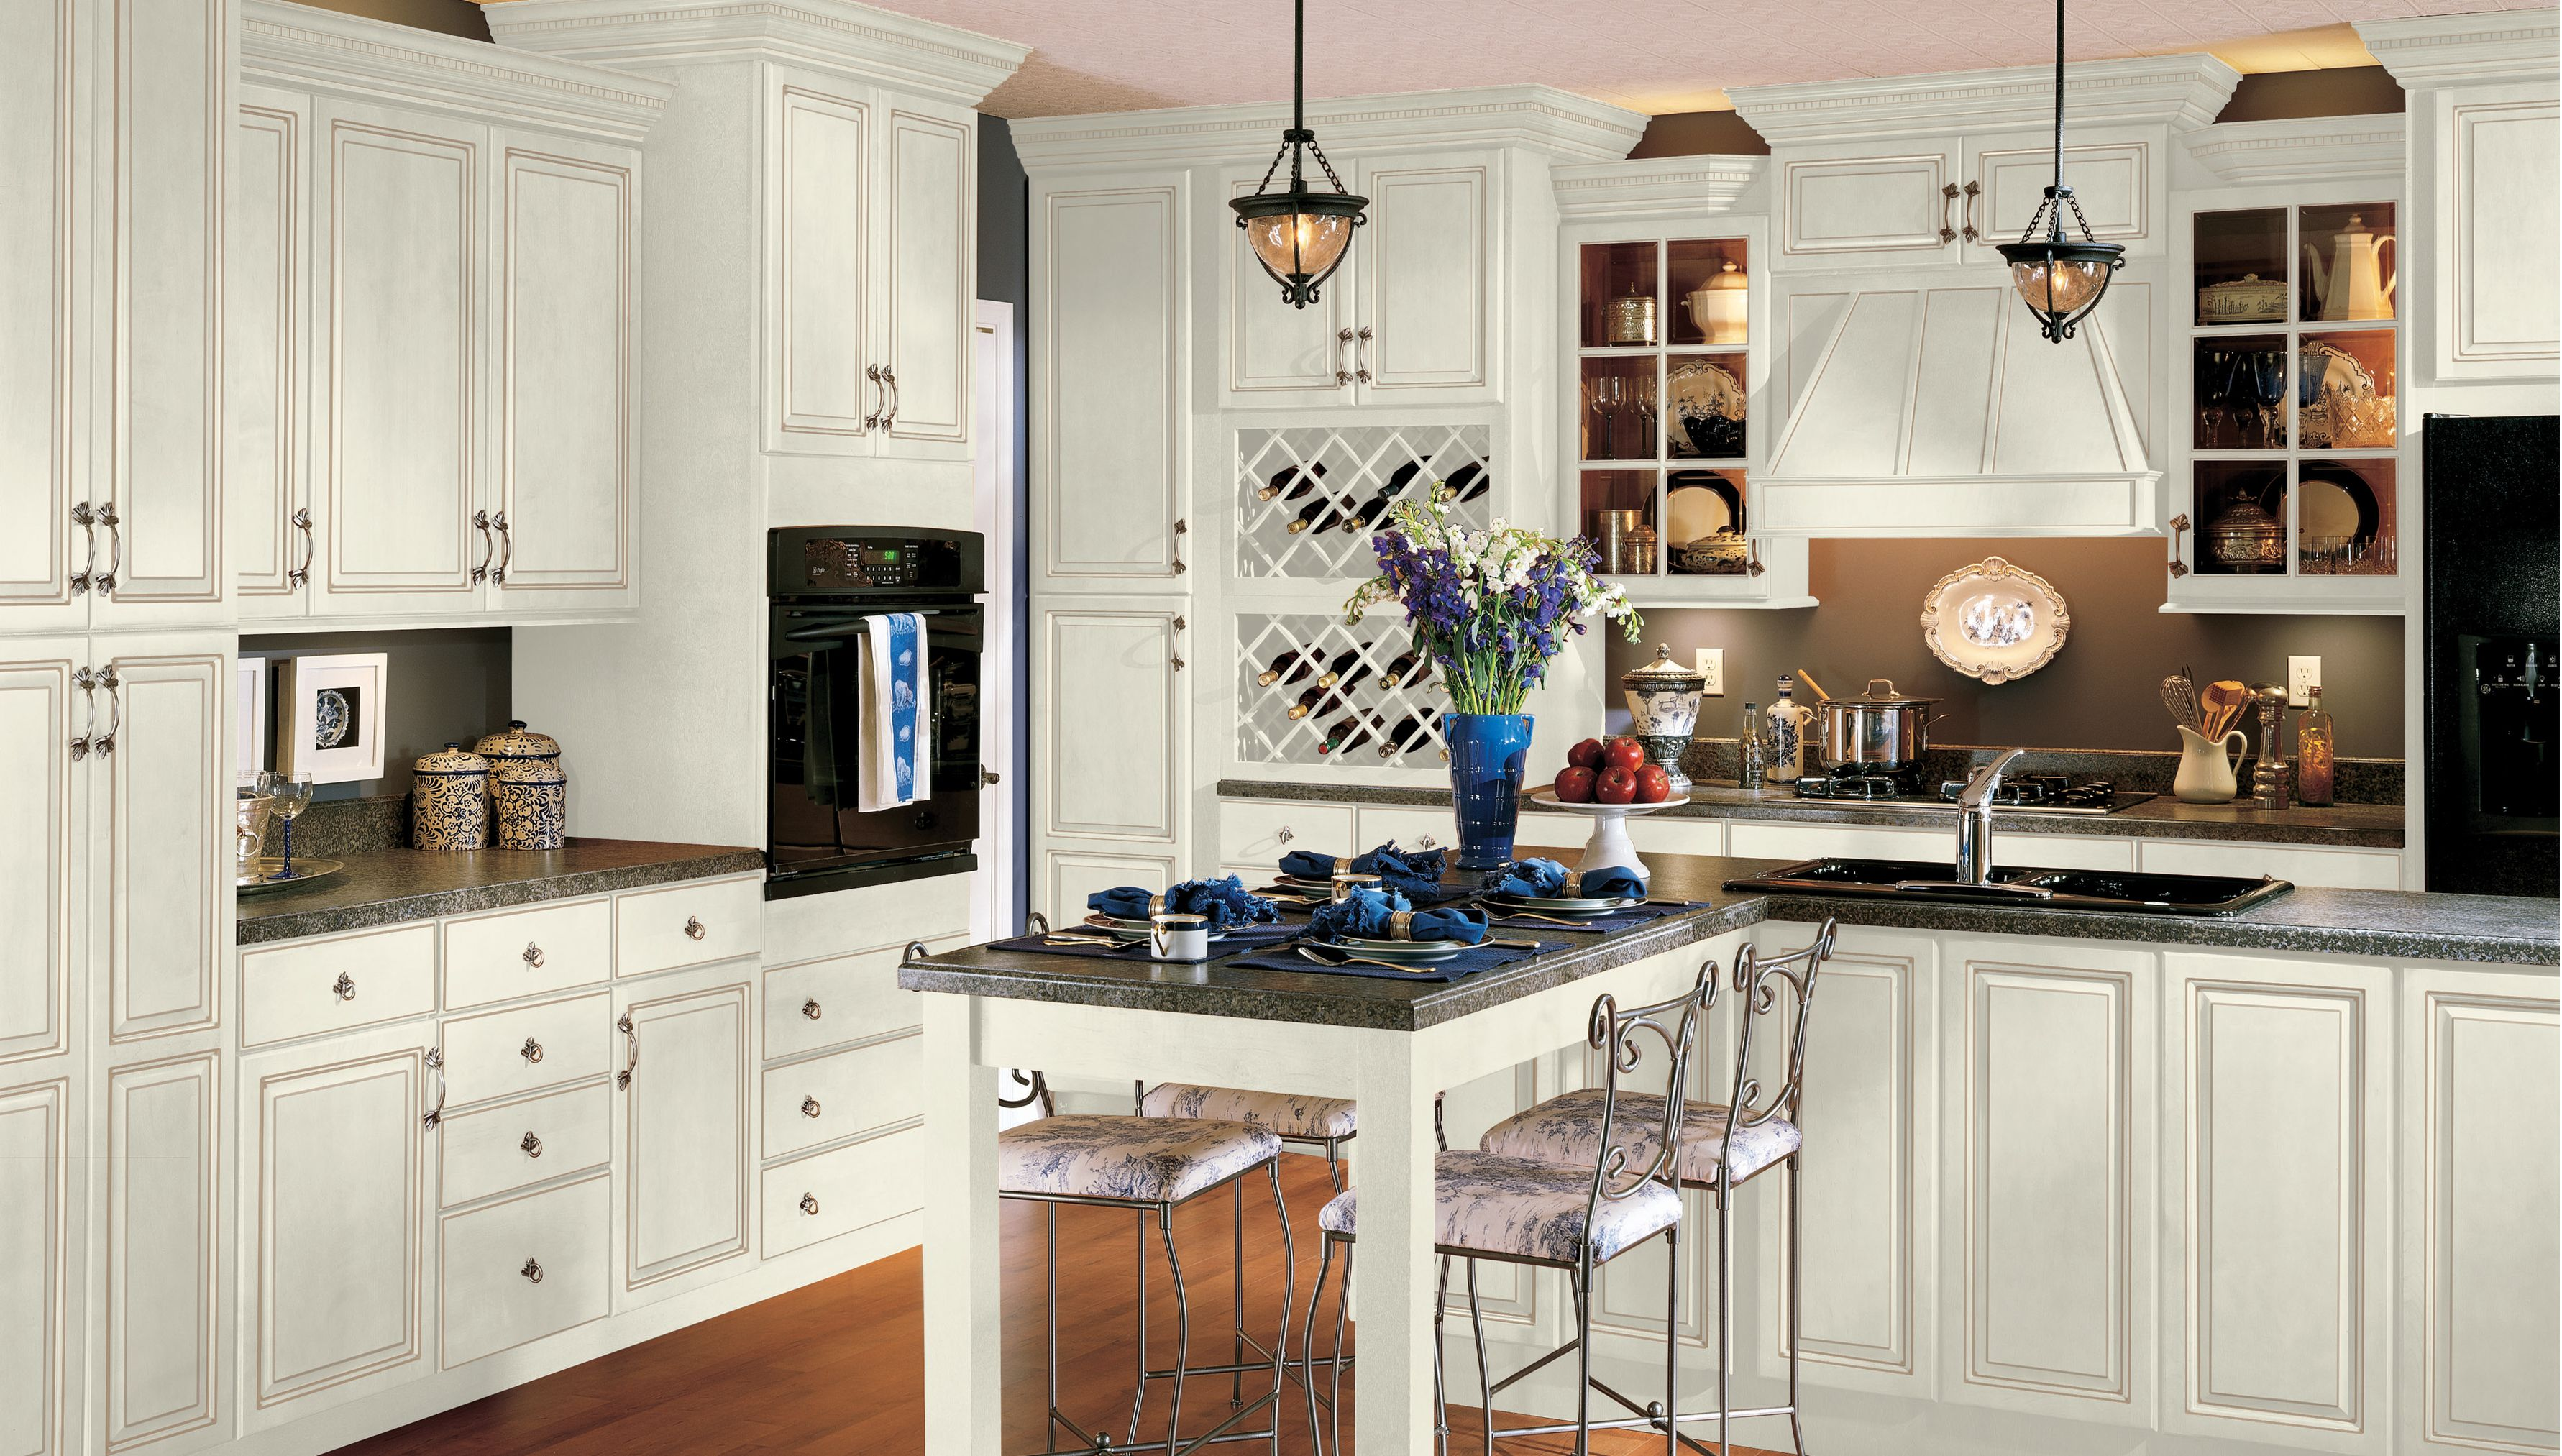 Pin On Express Kitchens Cabinet Models